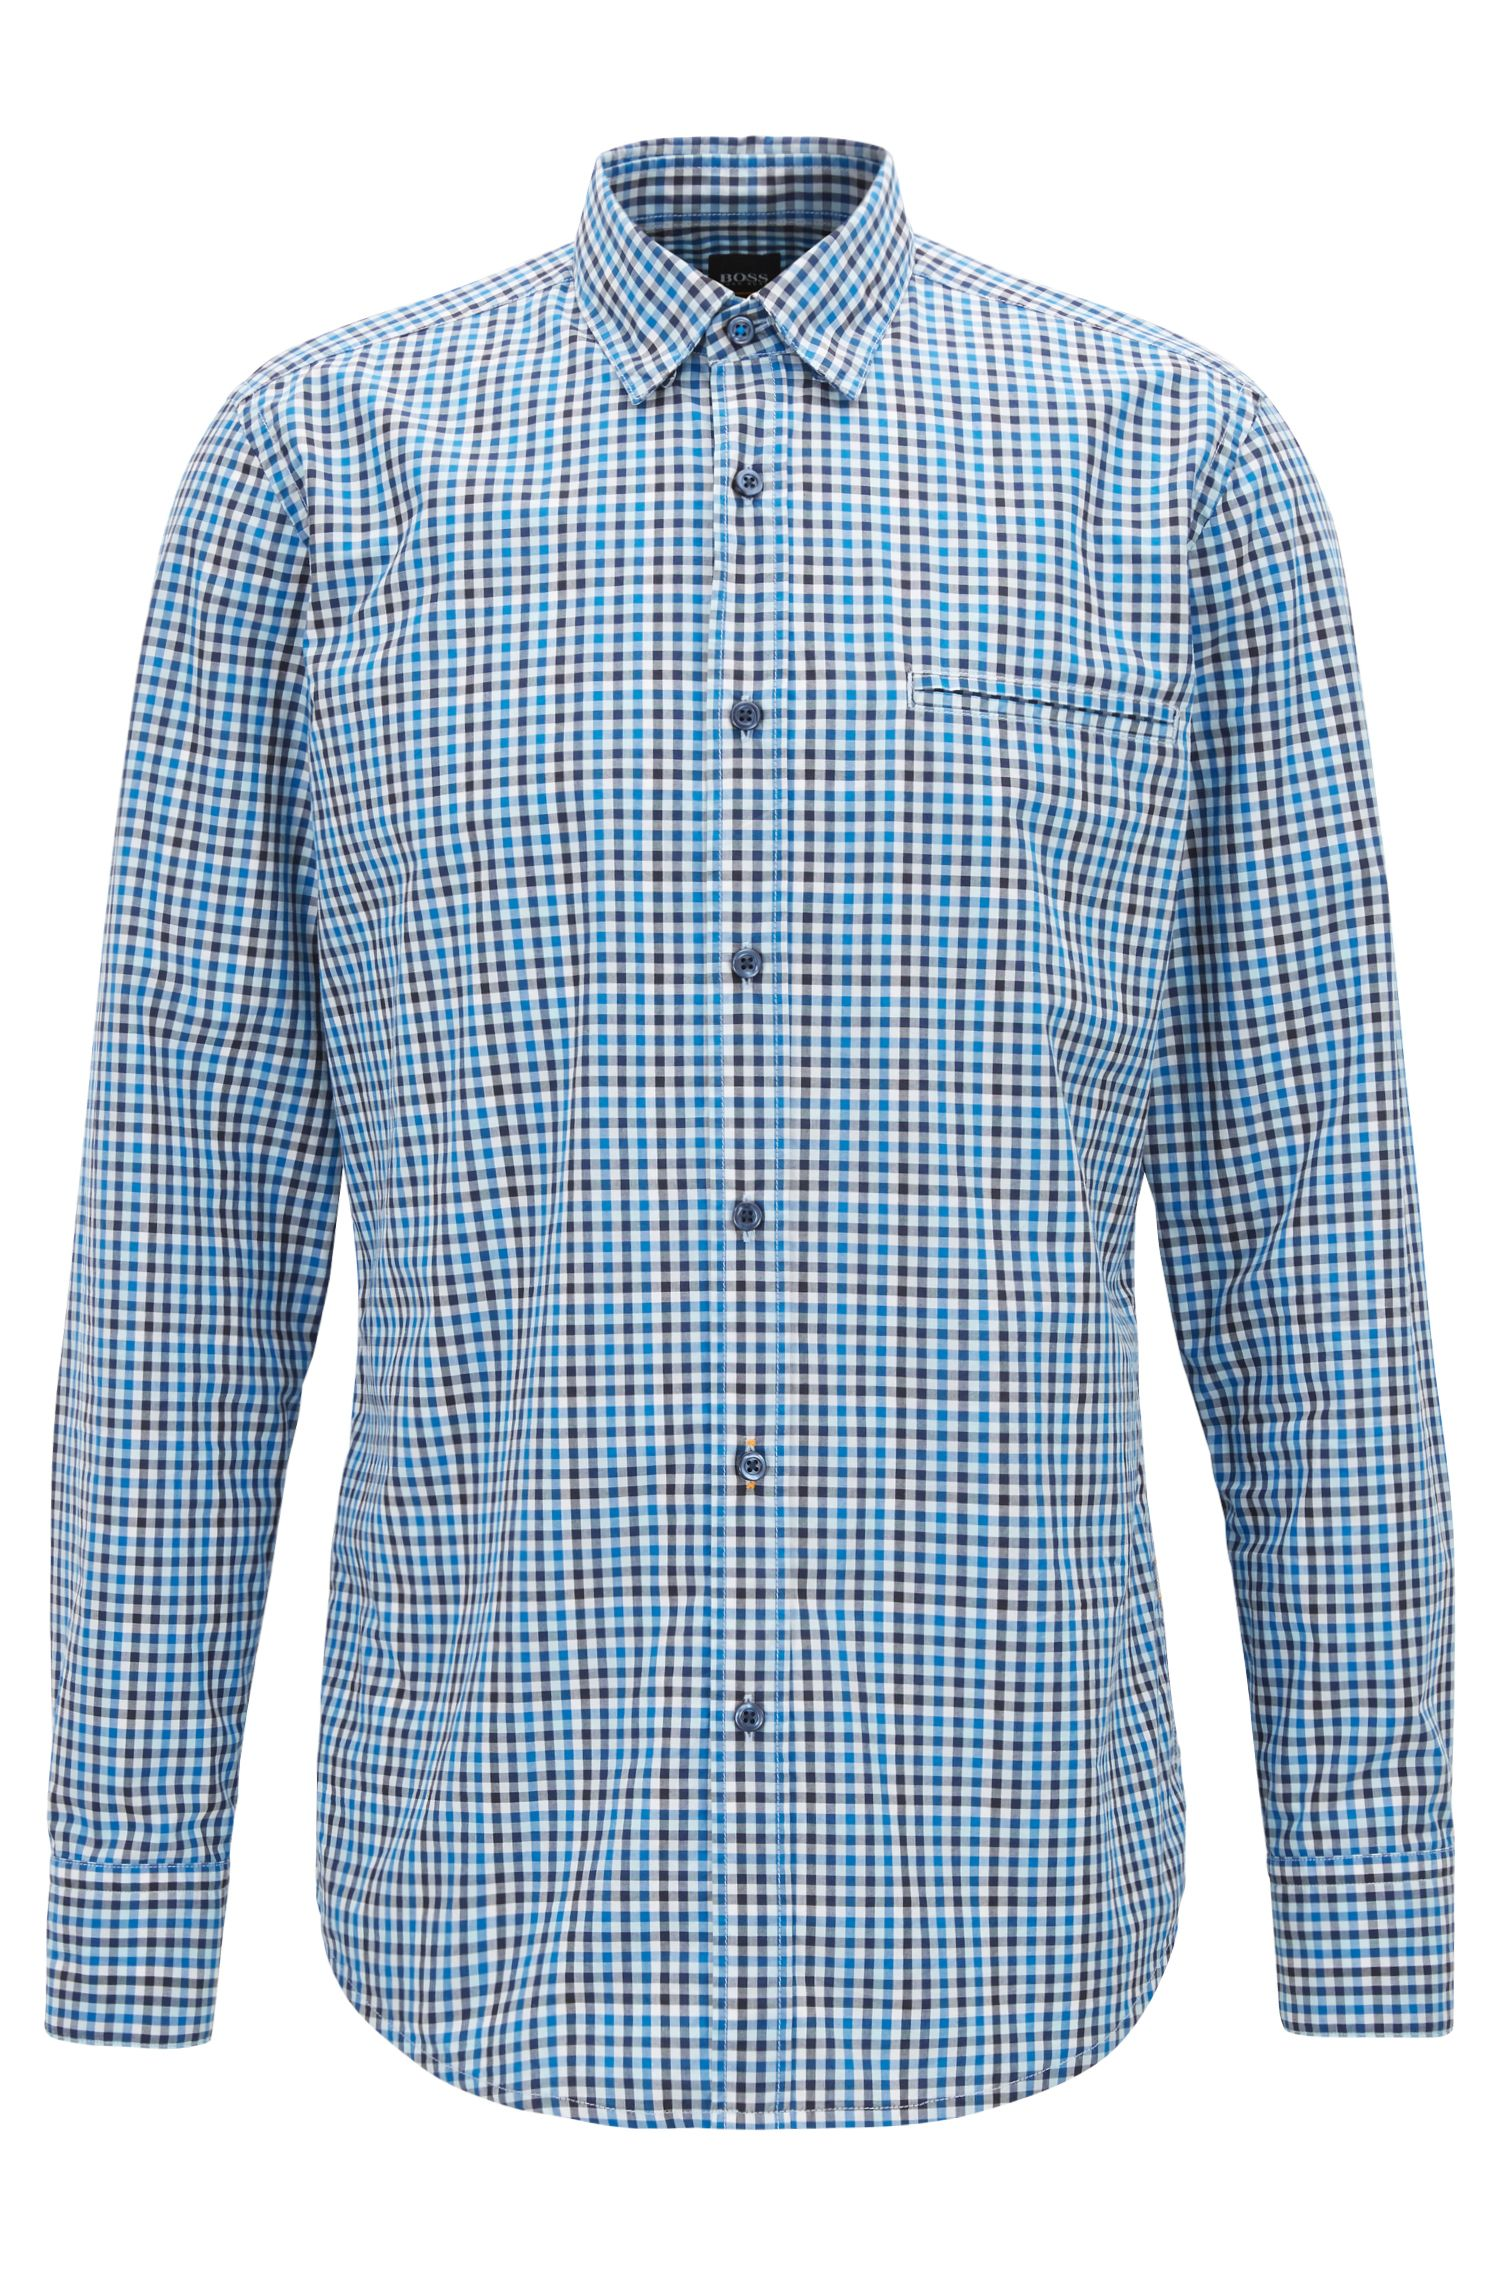 Regular-fit shirt in cotton with Vichy check